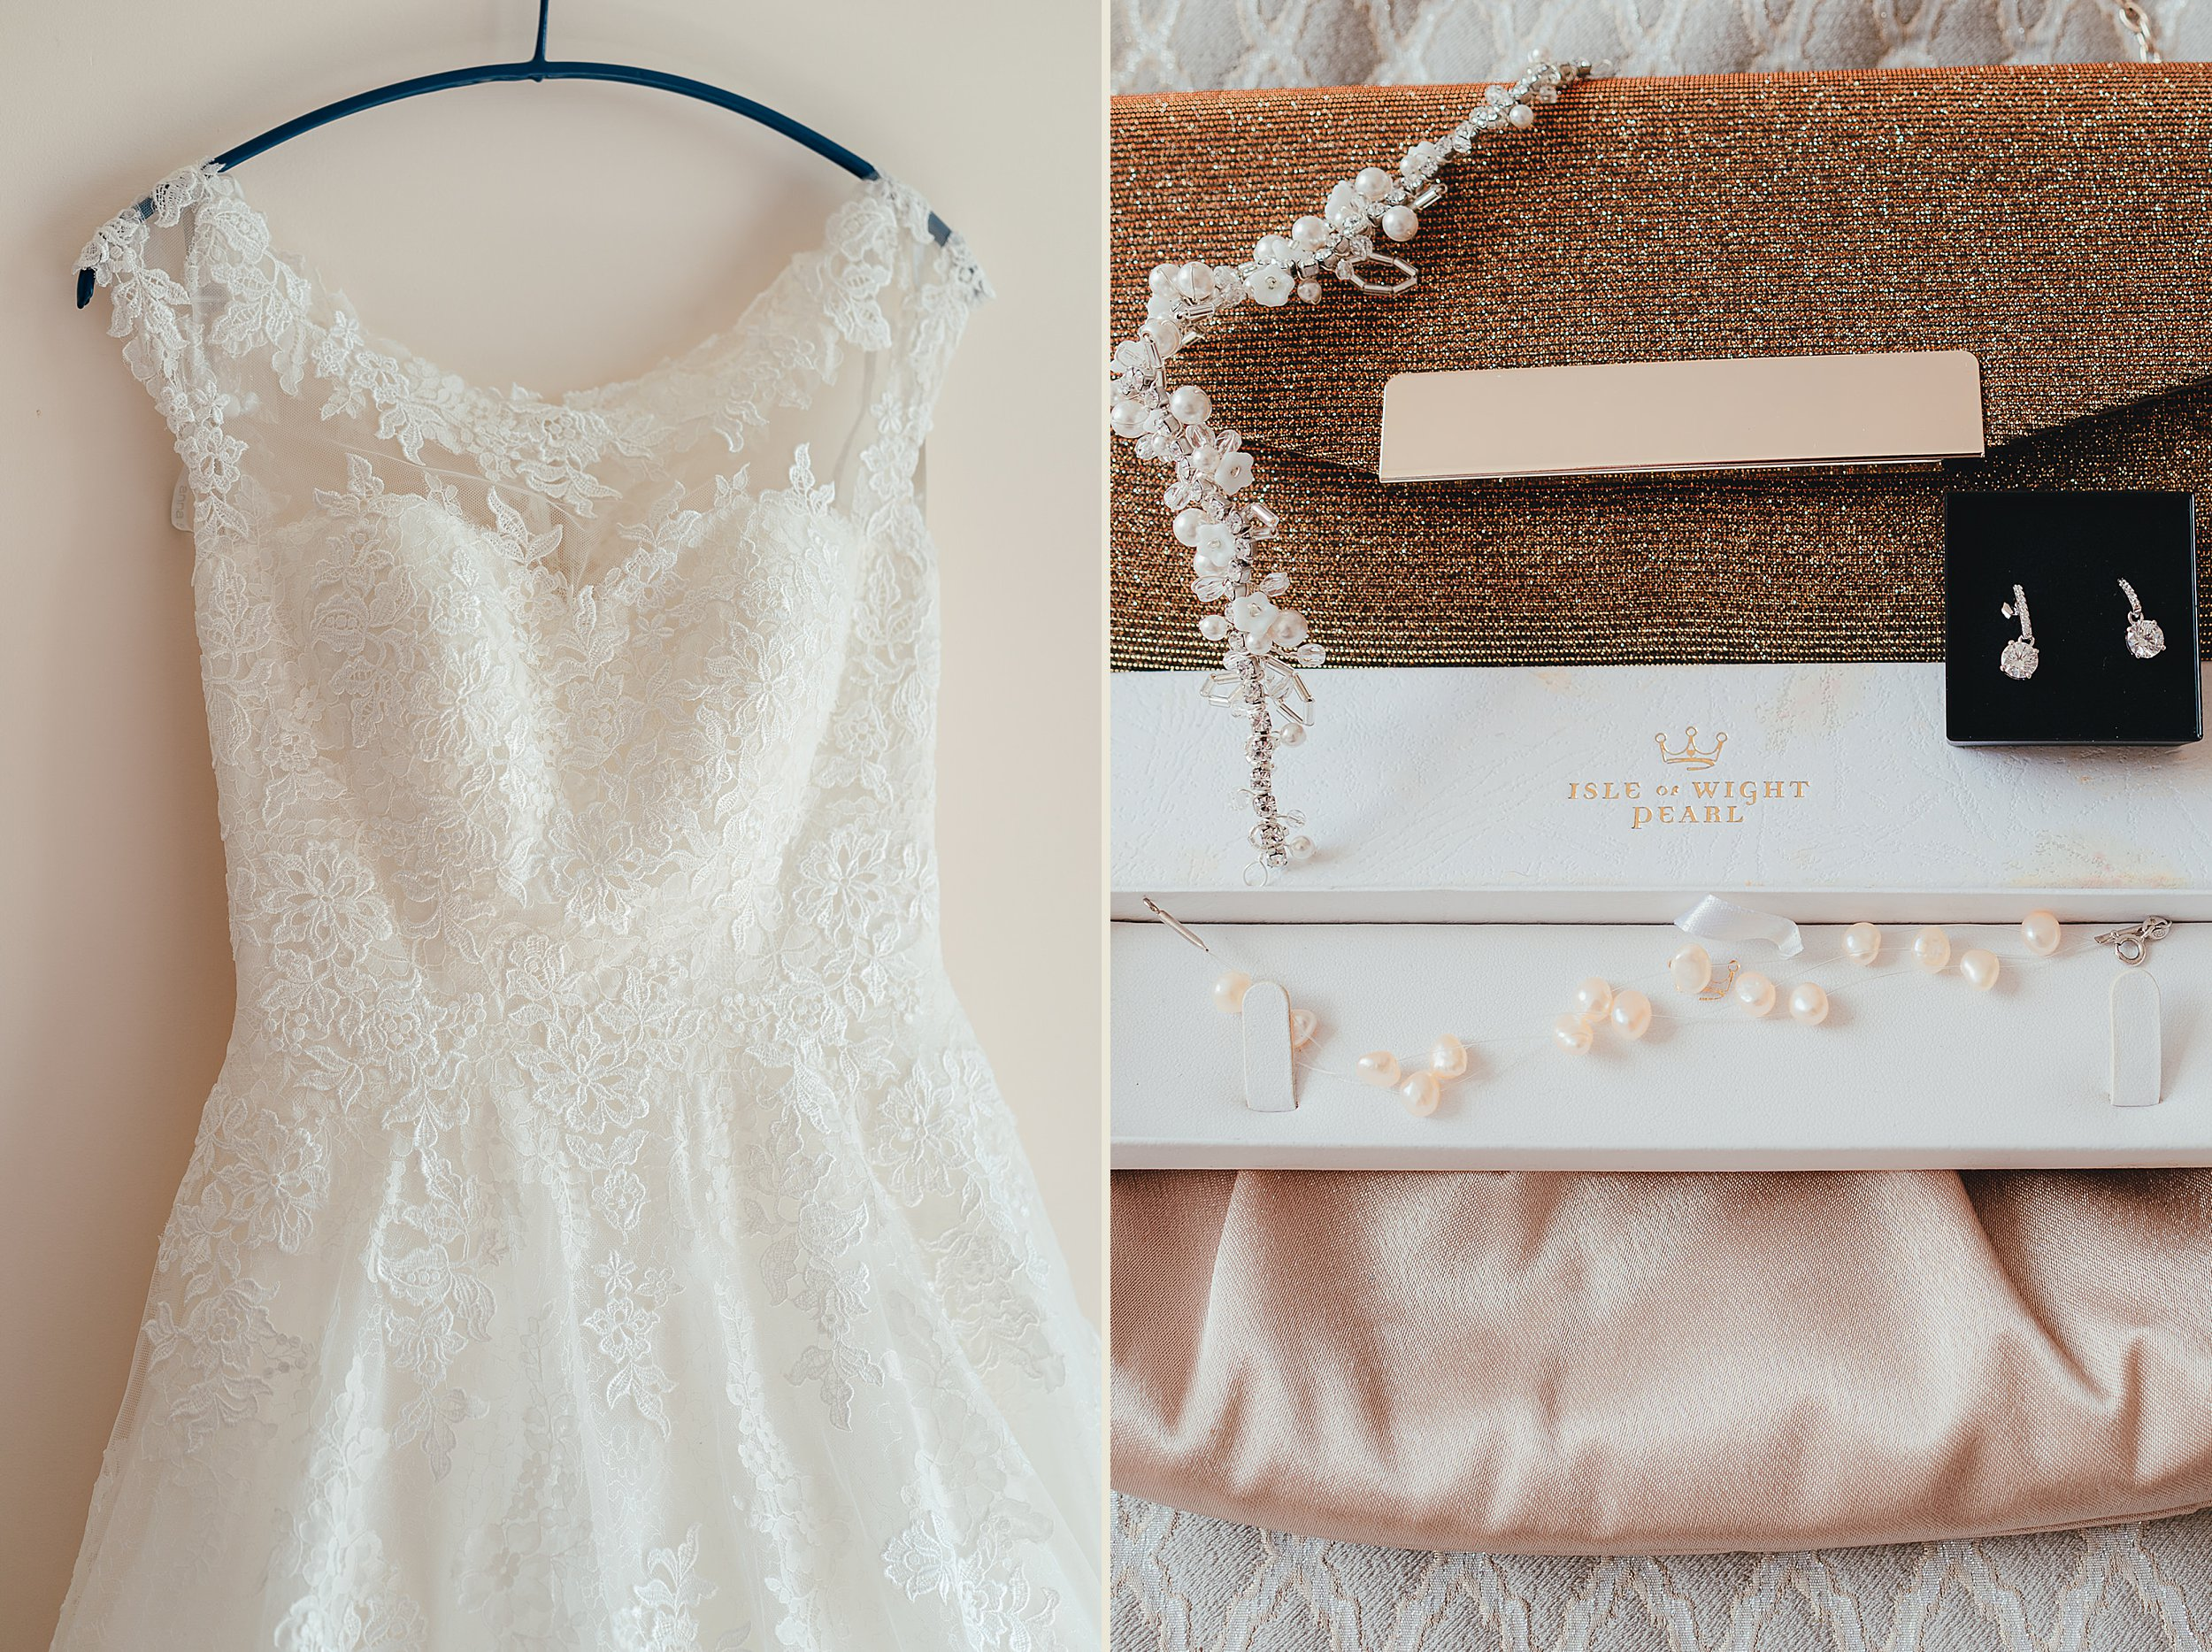 Westbury on Trym Wedding - Images of the Bride's wedding dress and accessories